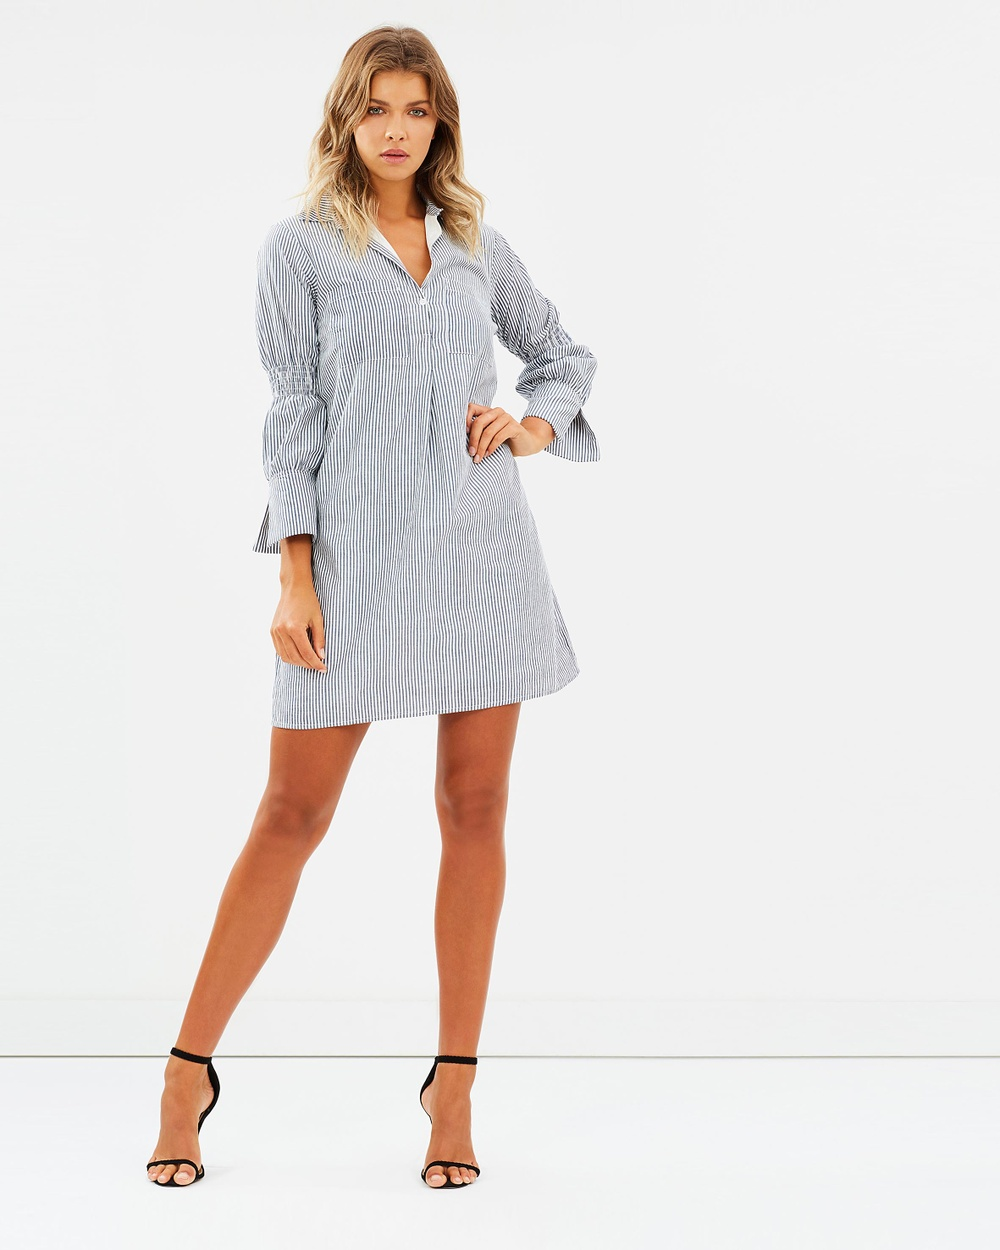 Atmos & Here ICONIC EXCLUSIVE Paloma Shirt Dress Dresses Blue Stripe ICONIC EXCLUSIVE Paloma Shirt Dress